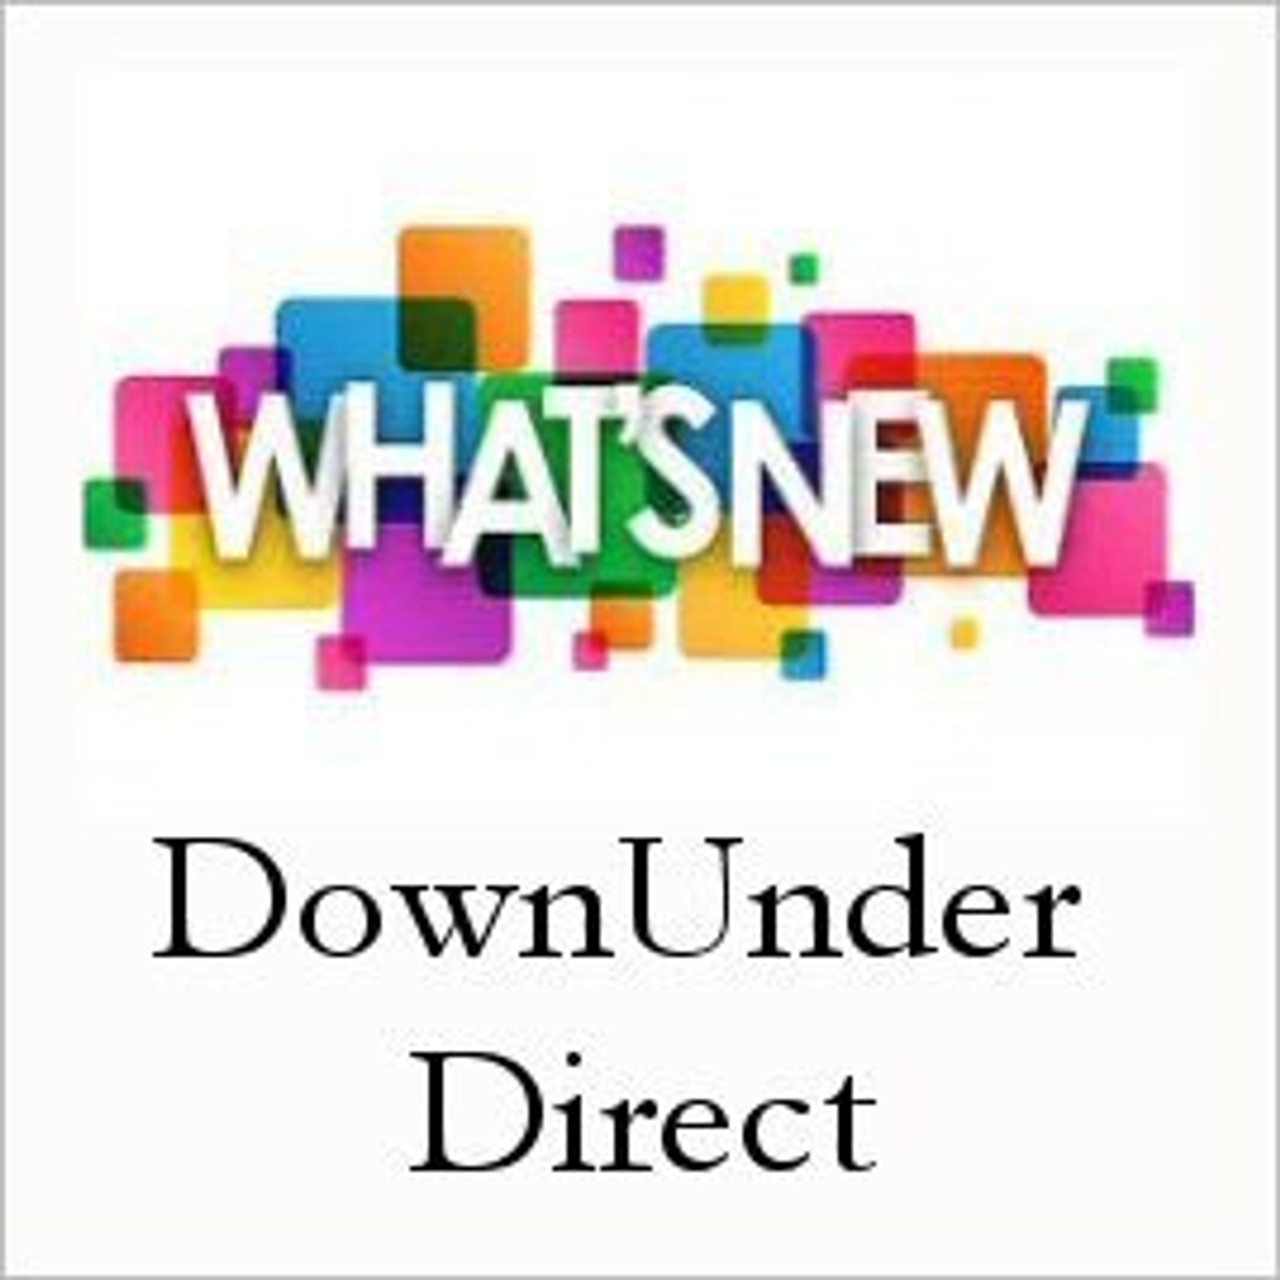 DownUnder Direct Whats New